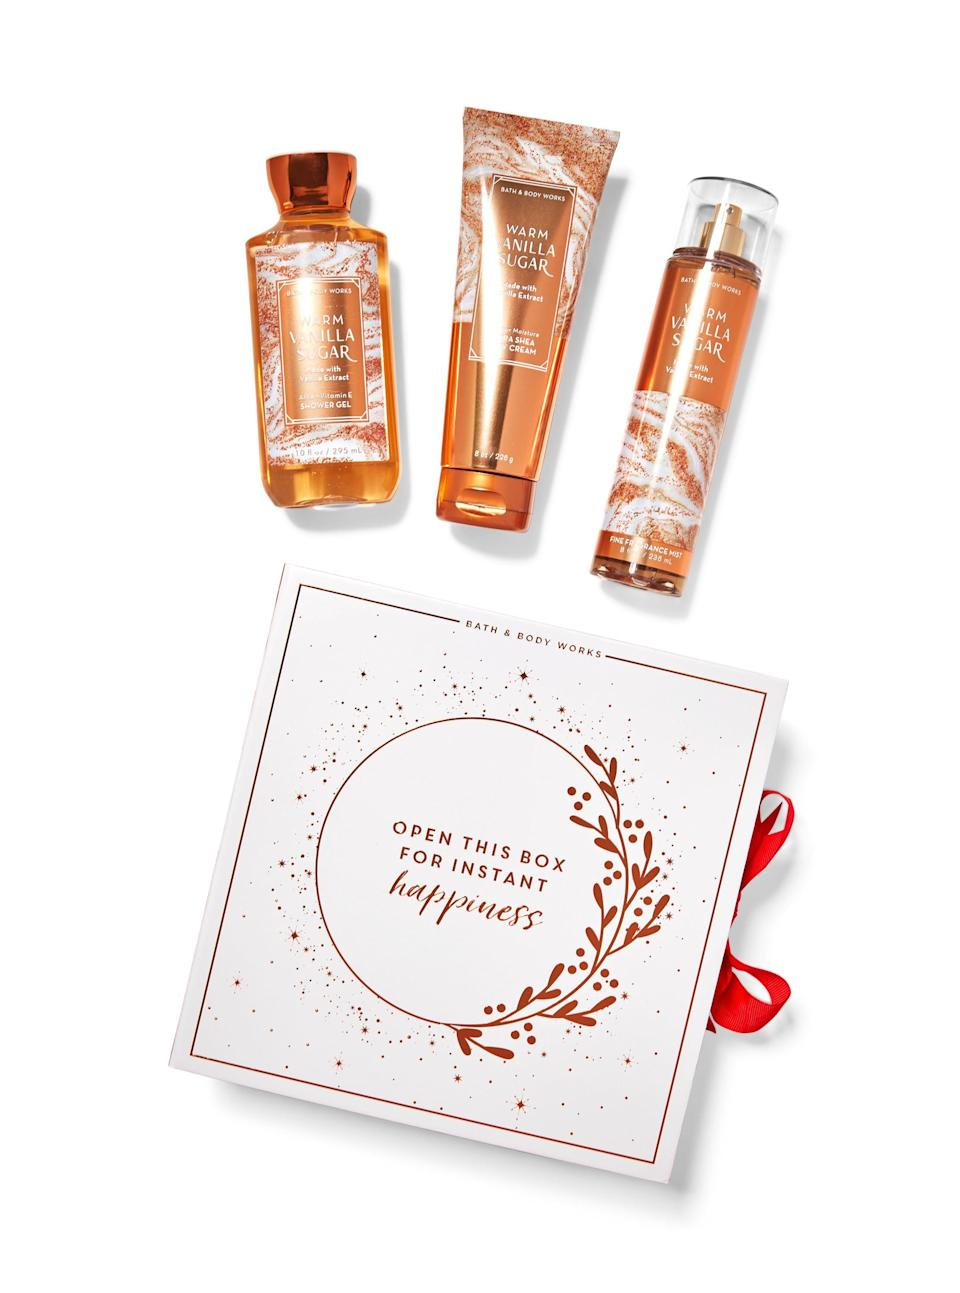 """<h3>Warm Vanilla Sugar Gift Box Set</h3><br>If the cinnamon snickerdoodle candle piqued your interest, go ahead and add this sweet <a href=""""https://www.refinery29.com/en-us/bath-and-body-works-perfume"""" rel=""""nofollow noopener"""" target=""""_blank"""" data-ylk=""""slk:vanilla-scented"""" class=""""link rapid-noclick-resp"""">vanilla-scented</a> gift box to your cart.<br><br><strong>Bath & Body Works</strong> WARM VANILLA SUGAR Gift Box Set, $, available at <a href=""""https://go.skimresources.com/?id=30283X879131&url=https%3A%2F%2Fwww.bathandbodyworks.com%2Fp%2Fwarm-vanilla-sugar-gift-box-set-025138705.html%3Fcgid%3Dgift-sets%23start%3D2"""" rel=""""nofollow noopener"""" target=""""_blank"""" data-ylk=""""slk:Bath & Body Works"""" class=""""link rapid-noclick-resp"""">Bath & Body Works</a>"""